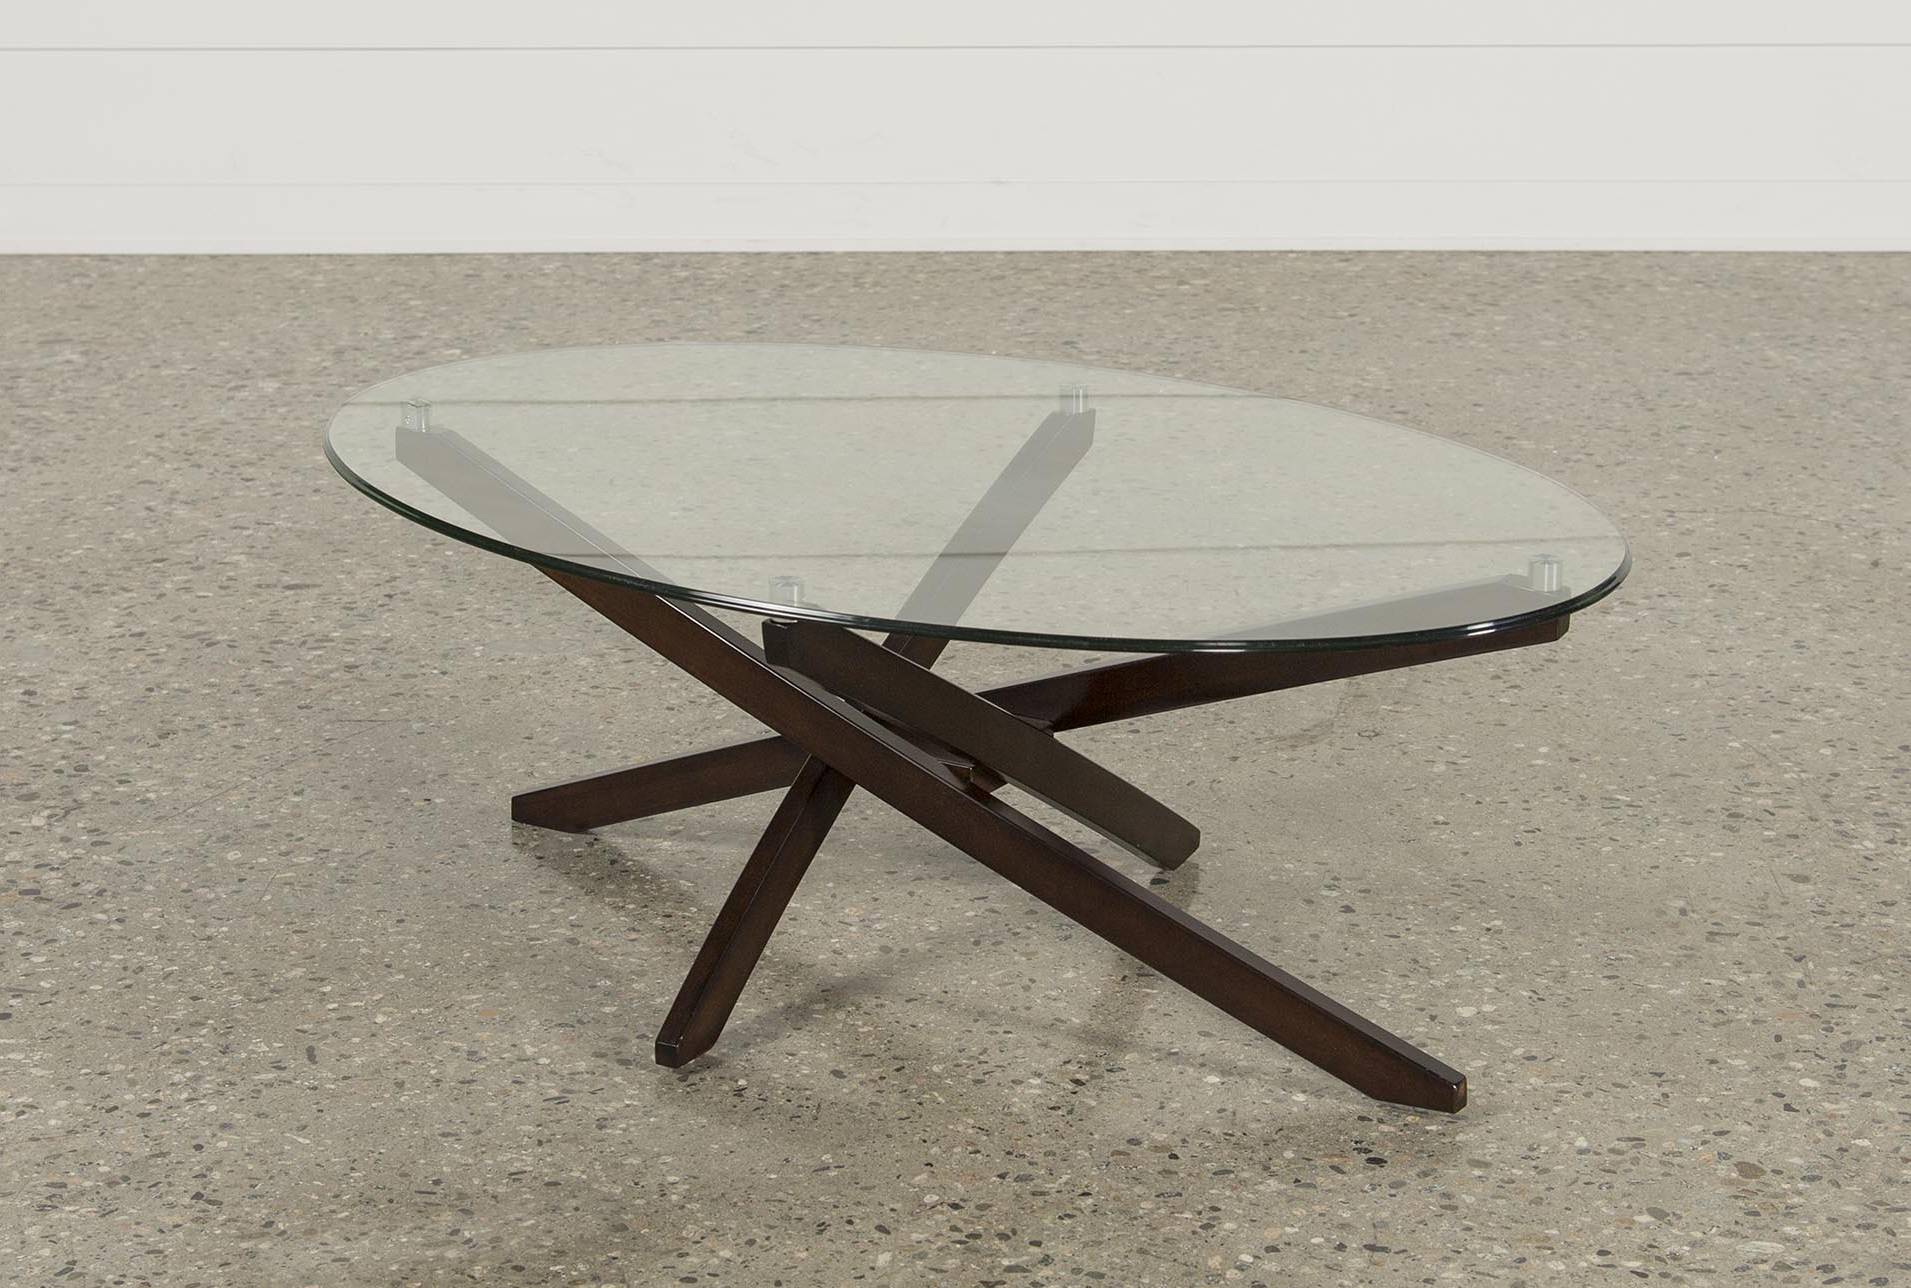 Oval Pertaining To Brisbane Oval Coffee Tables (Gallery 2 of 20)